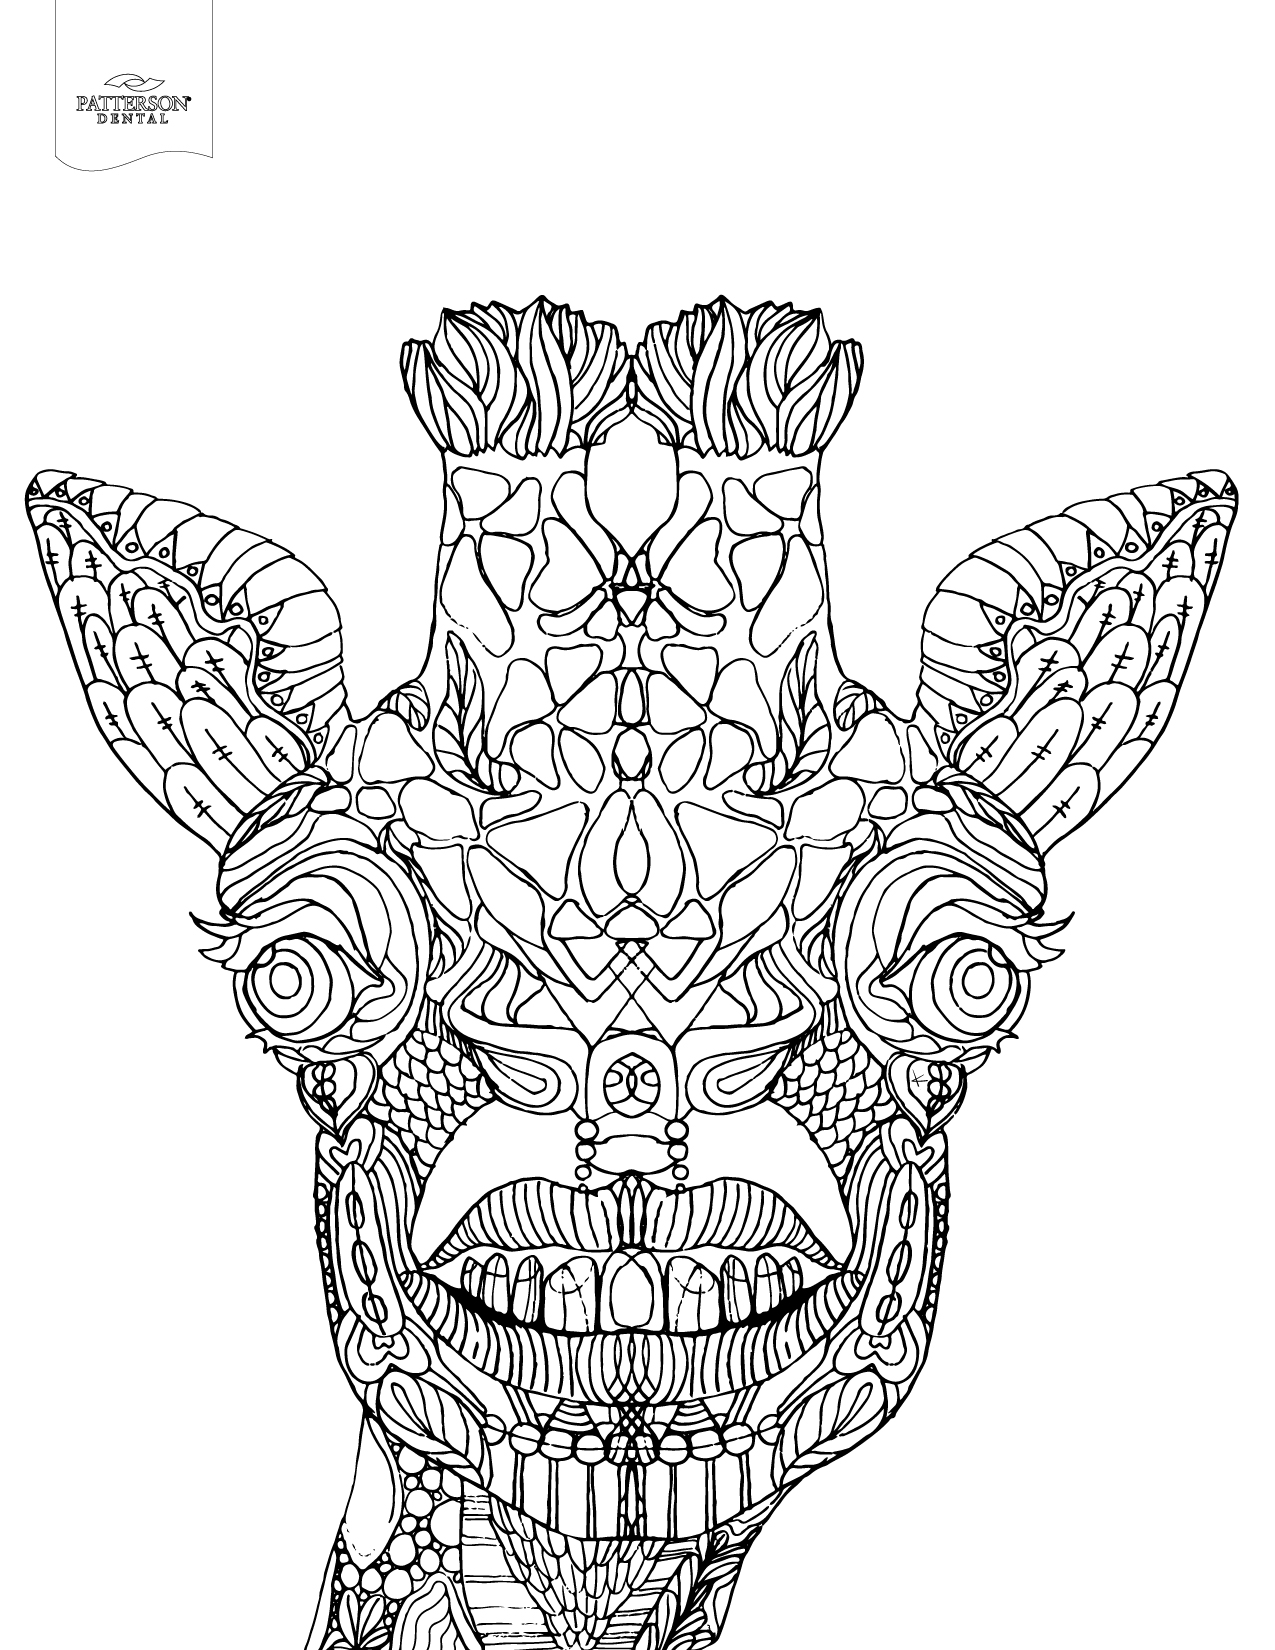 coloring pages for adults printable difficult coloring pages for adults free printable printable coloring pages adults for